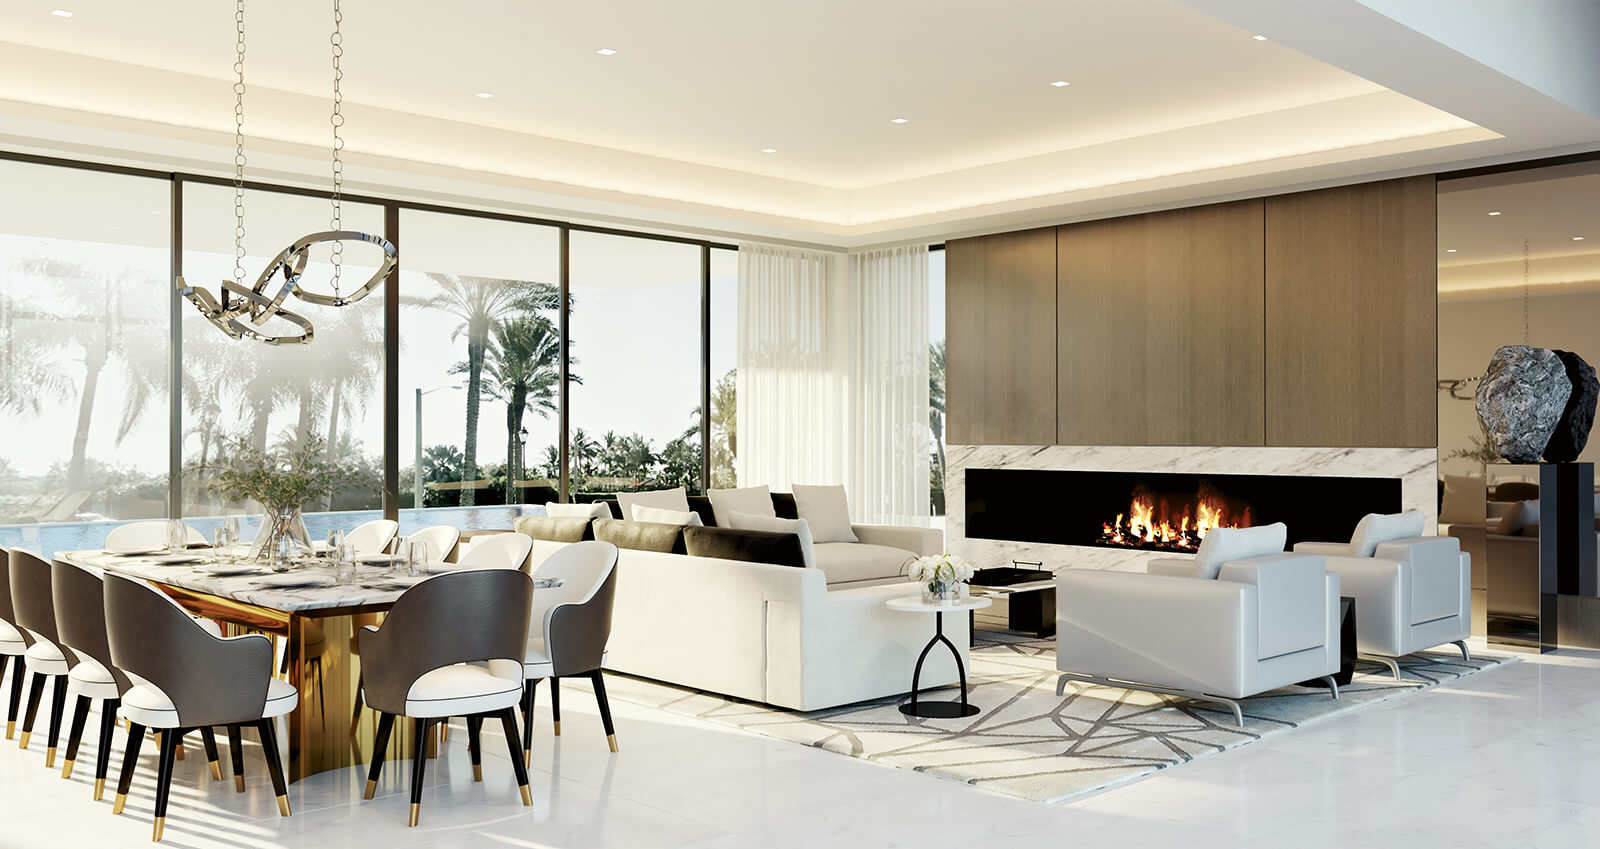 BOCA MODERN by Britto Charette Interior Design